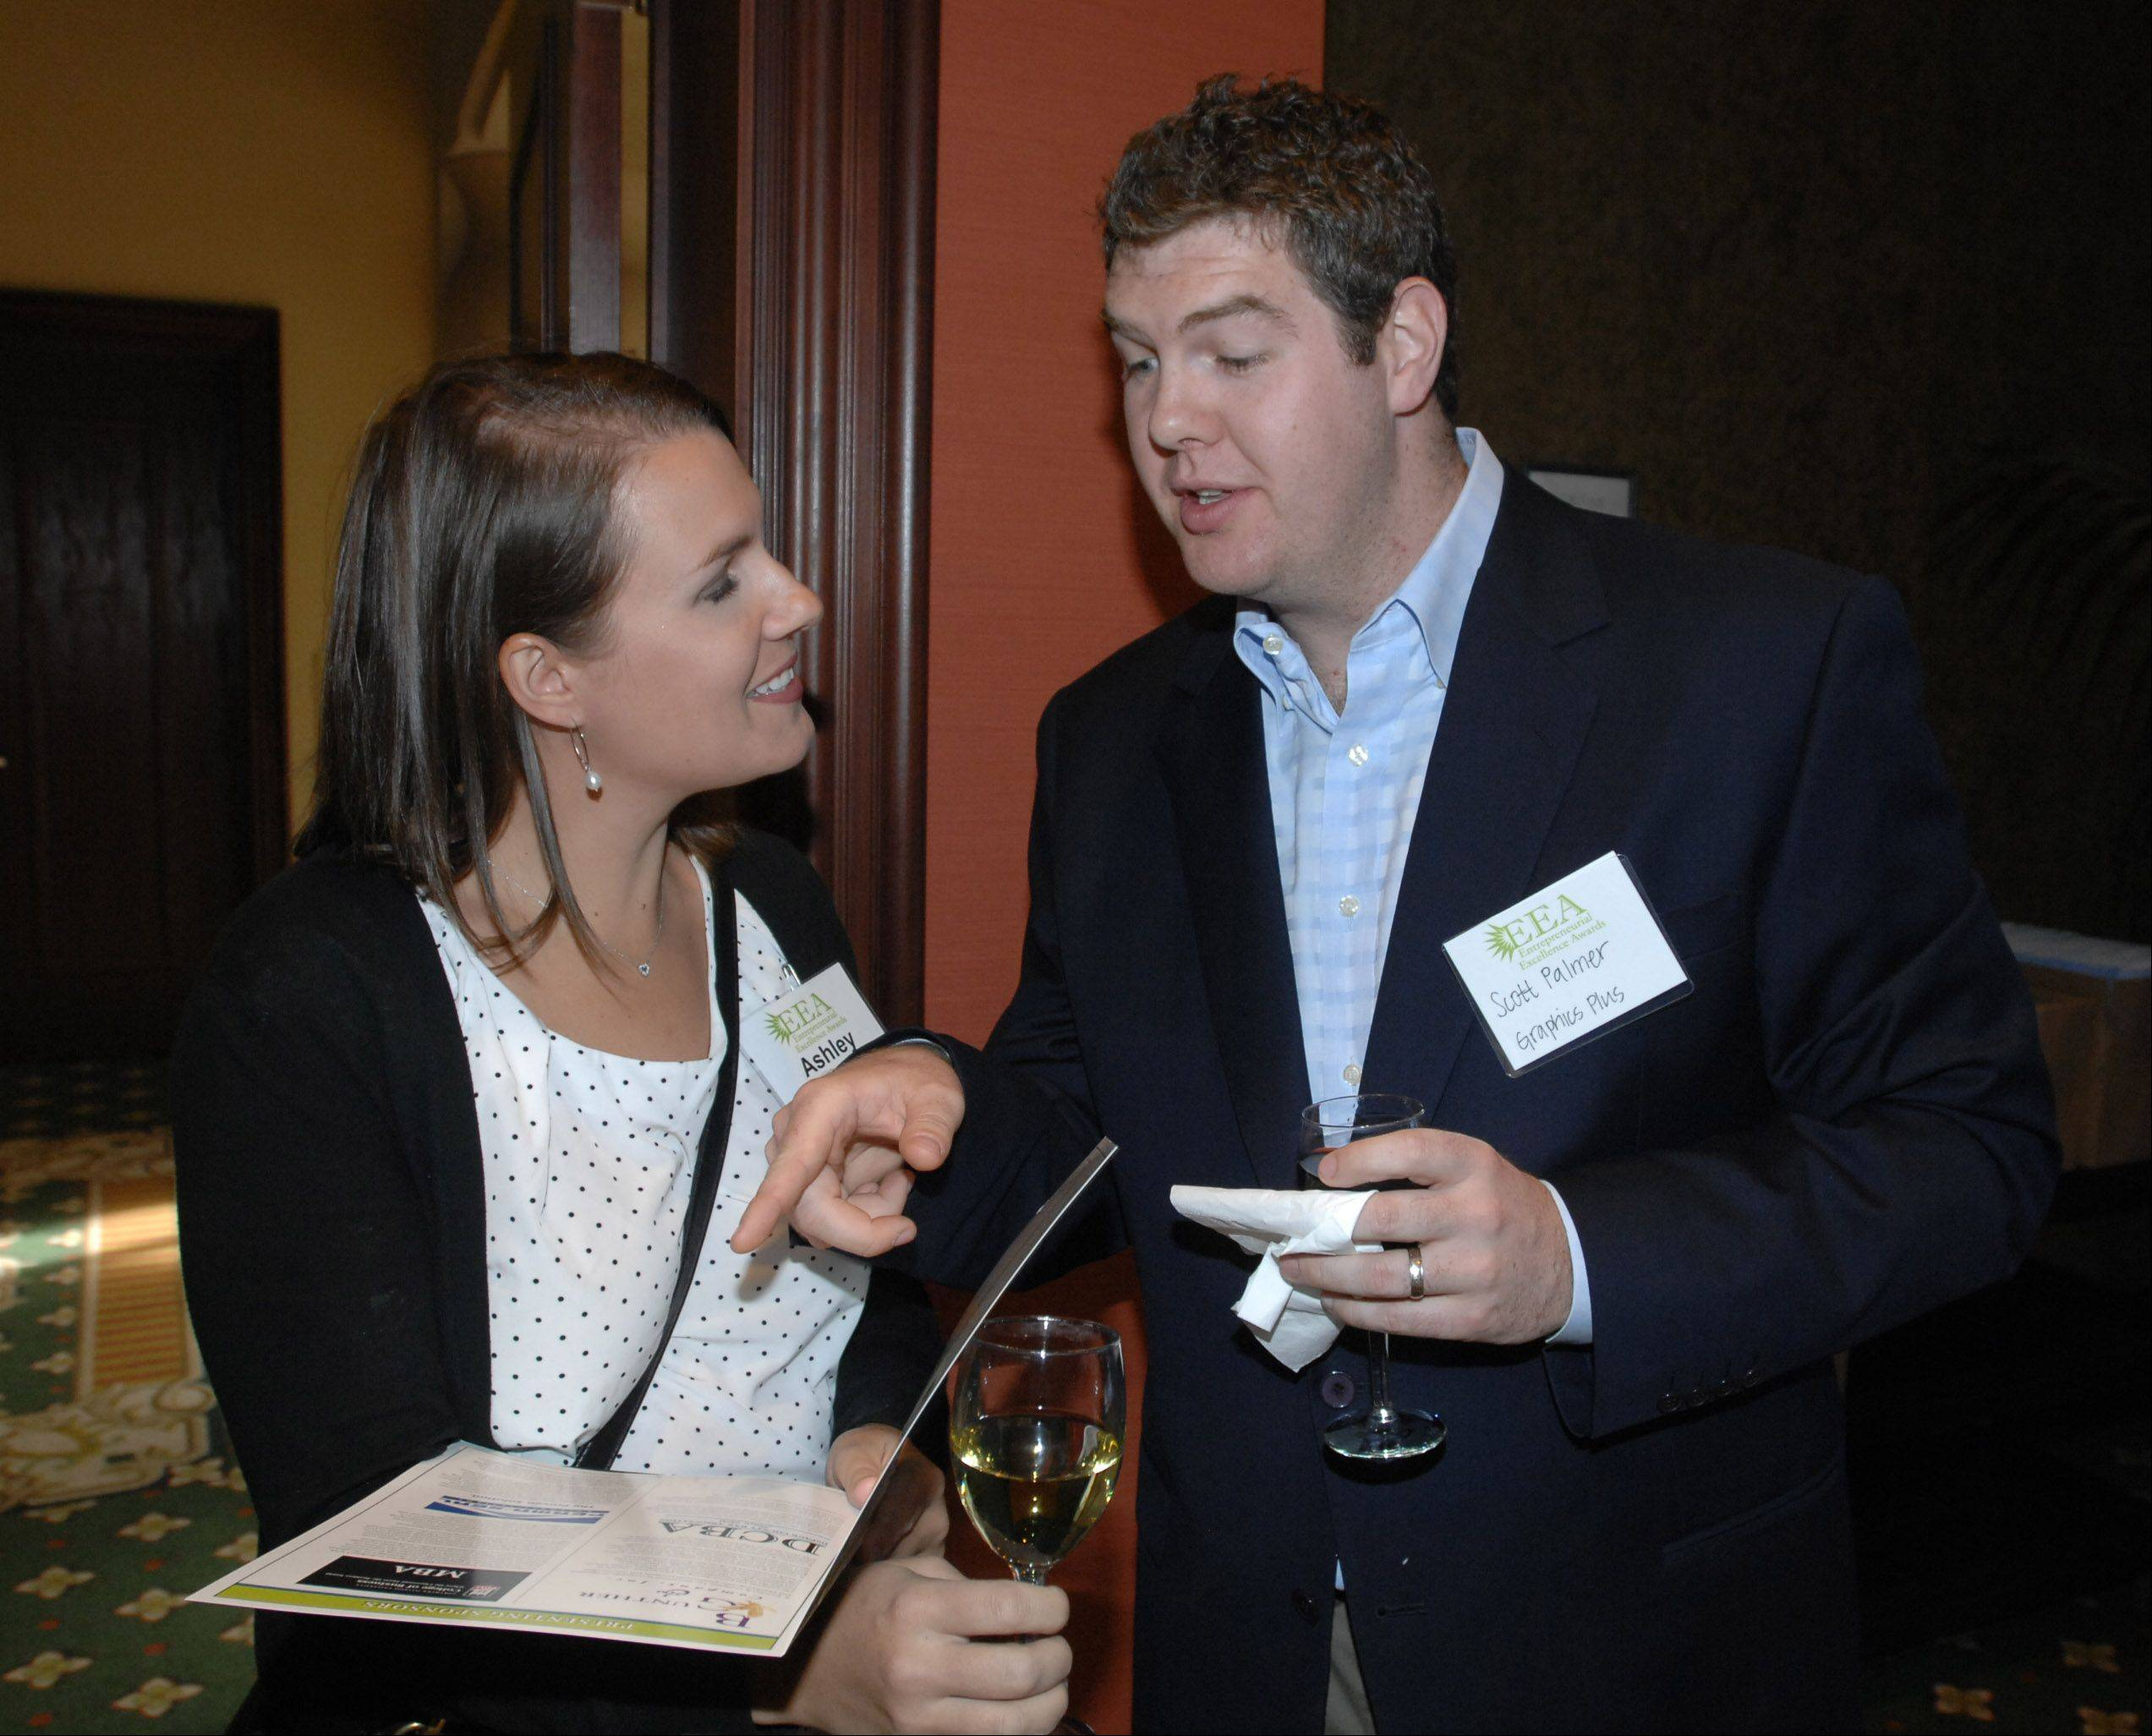 Ashley and Scott Palmer of Graphics Plus in Lisle look over the program at the 13th Annual Entrepreneurial Excellence Awards at Medinah Banquets in Addison Thursday.